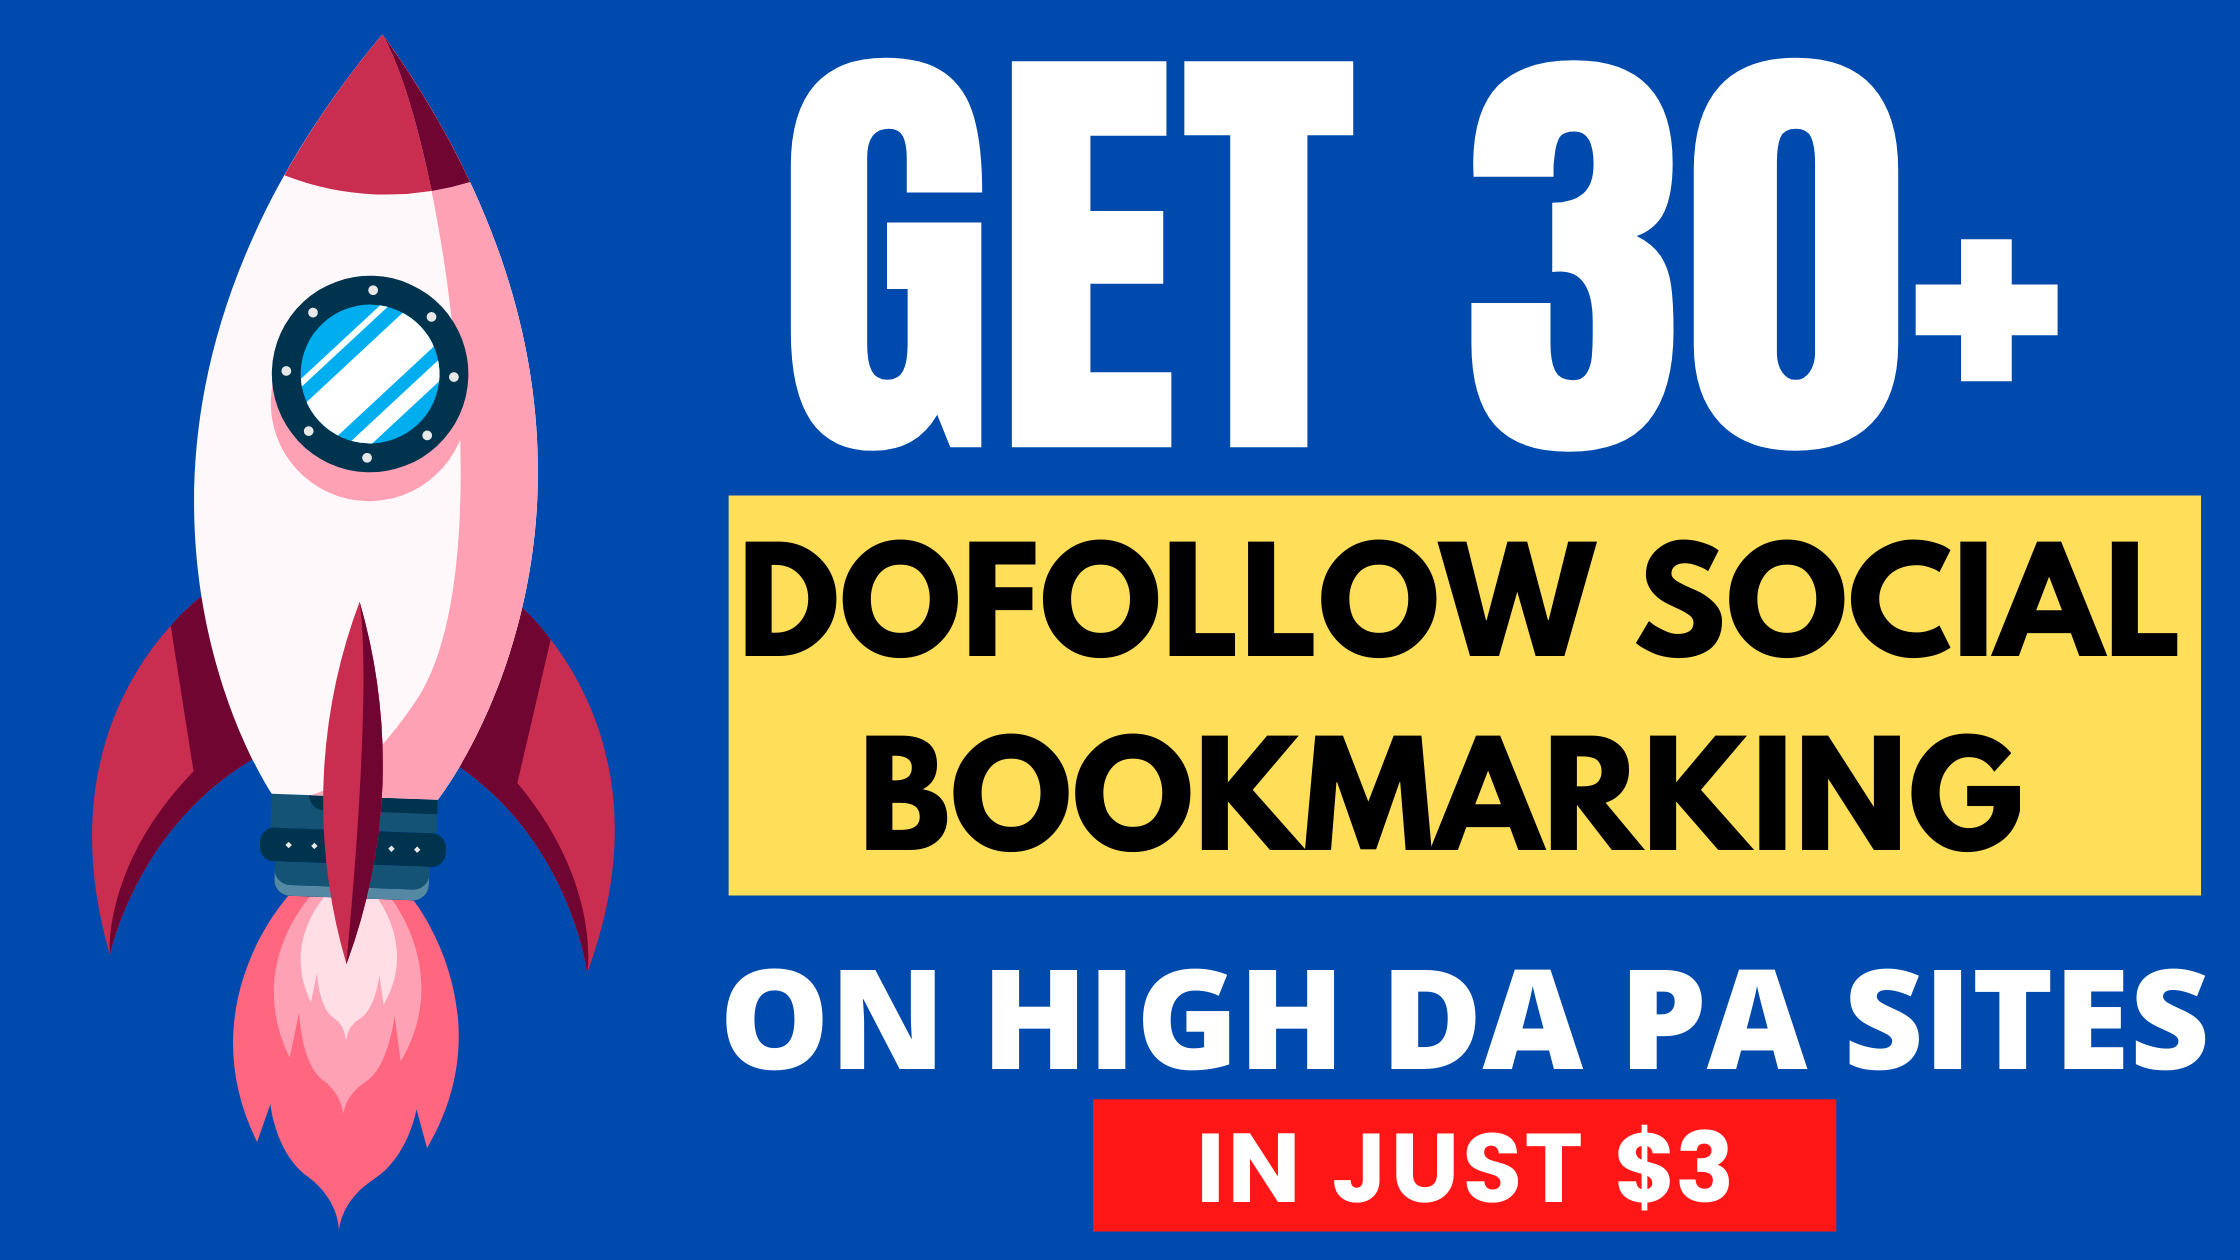 Manually 30+ Dofollow Social Bookmarking Submission On High DA PA Sites